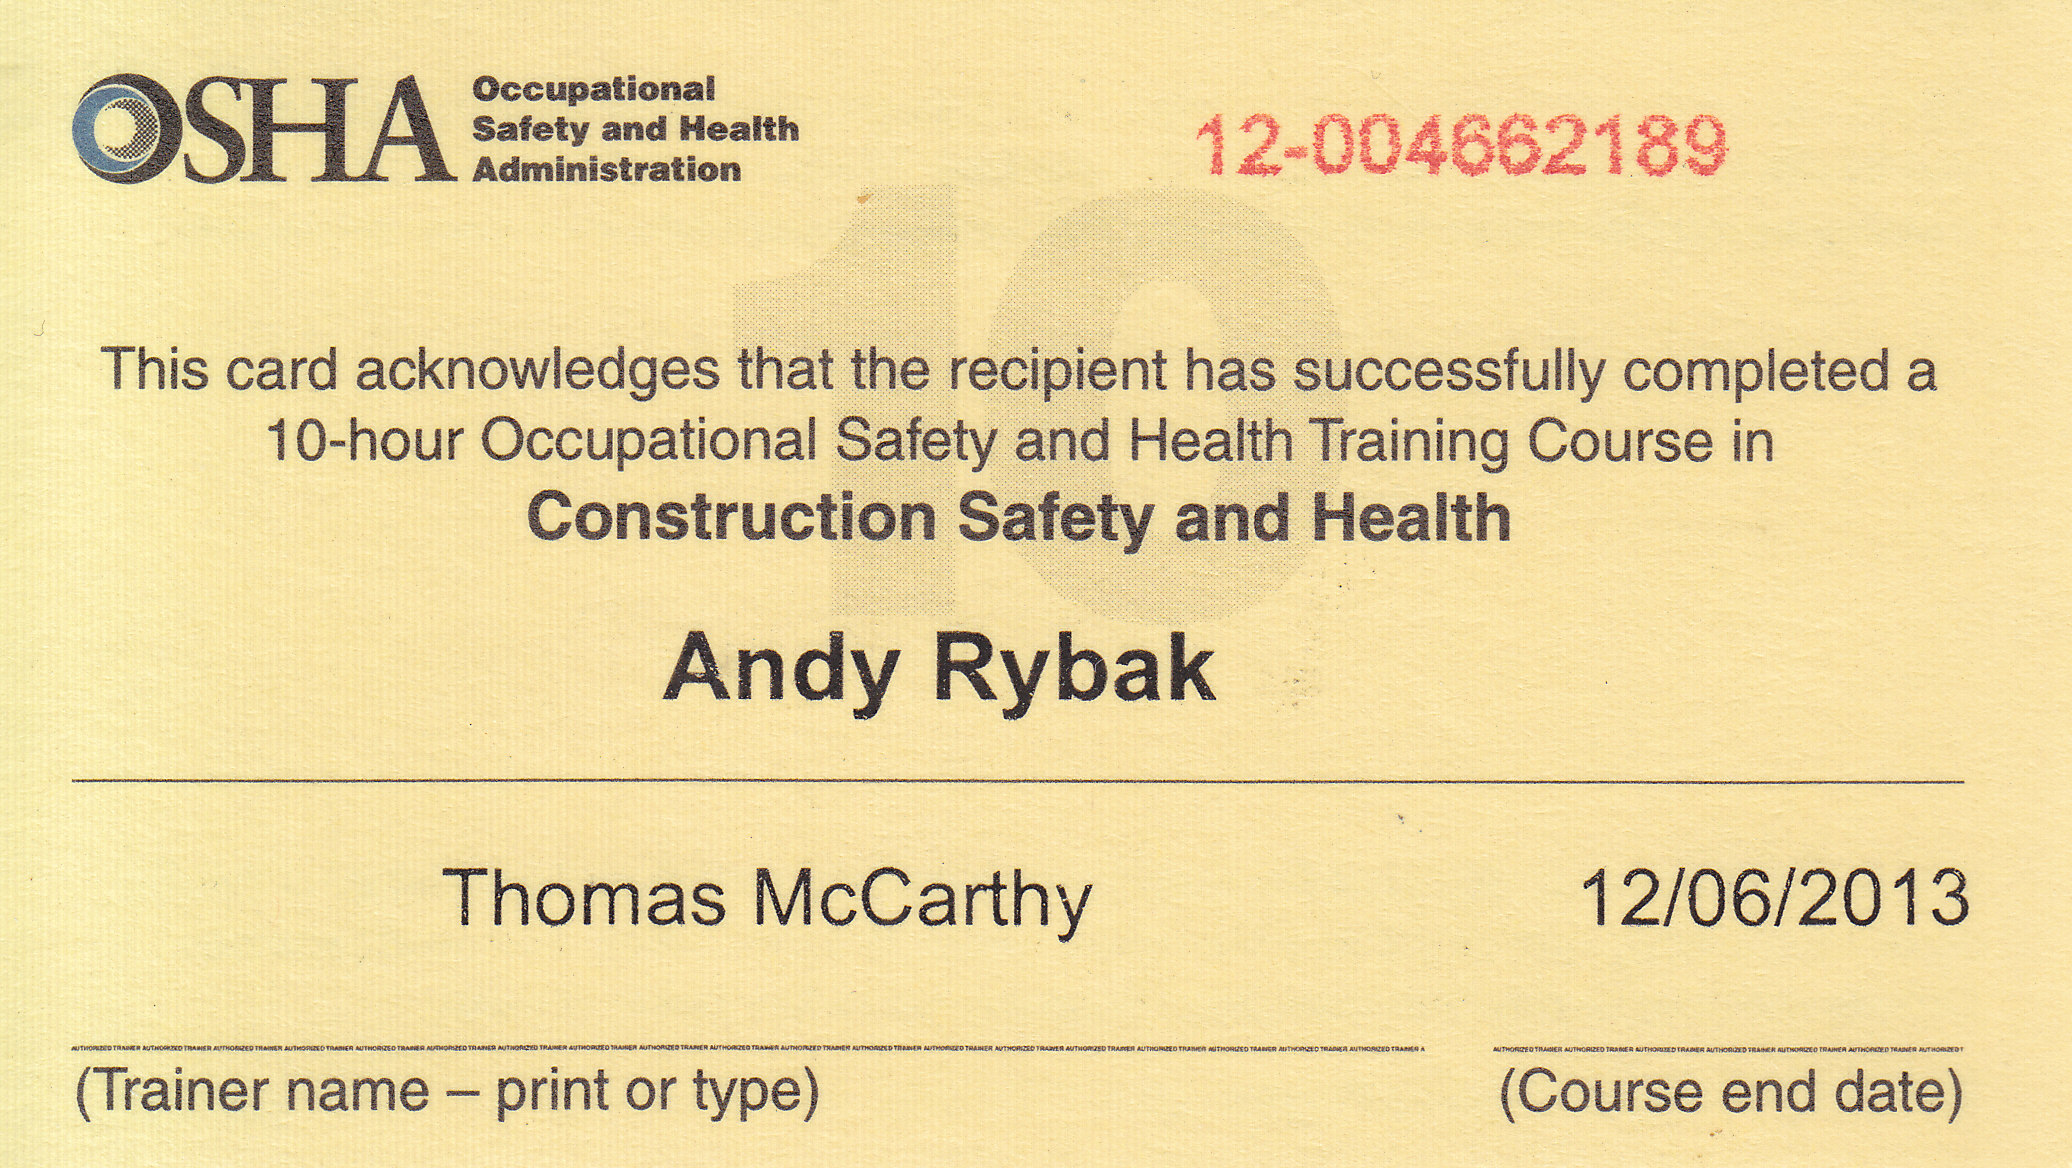 Credentials rybak home inspections osha certificate successful completion xflitez Image collections